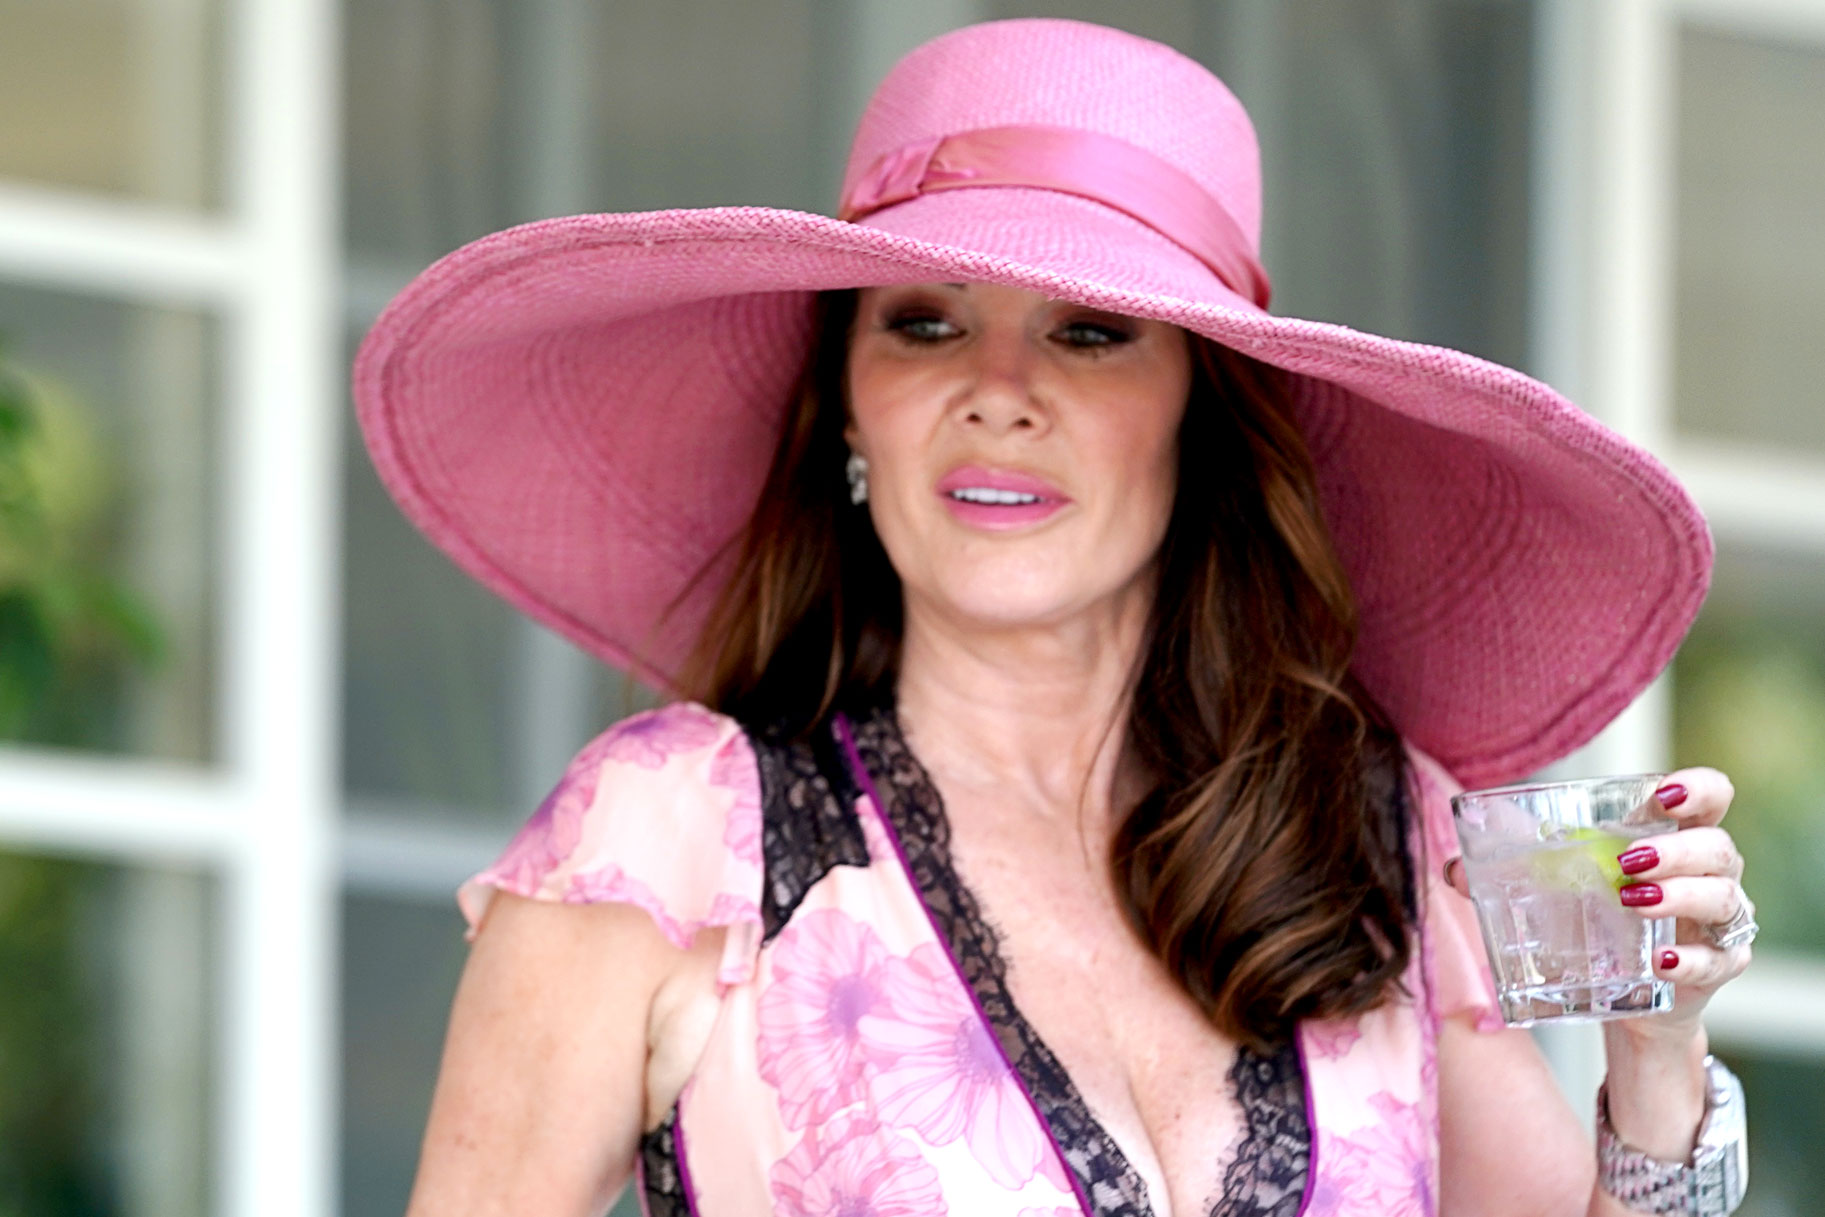 Lisa Vanderpump on The Real Housewives of Beverly Hills